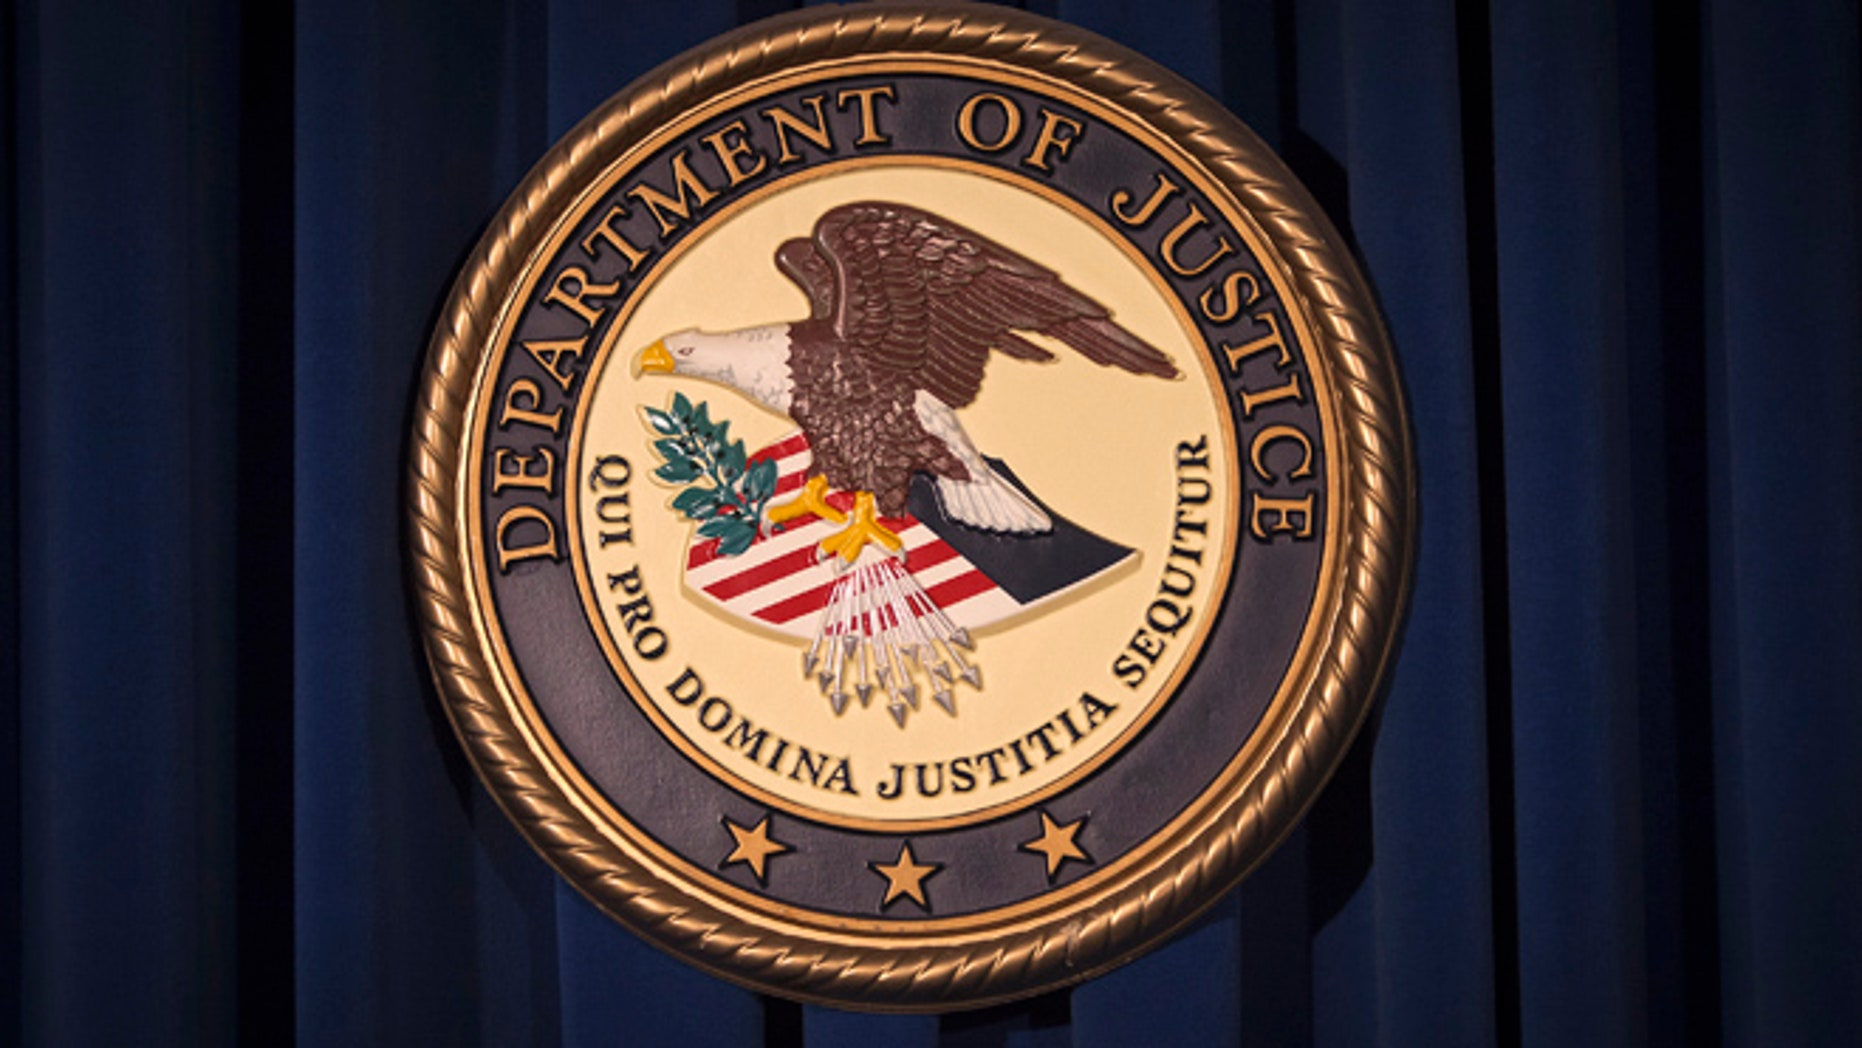 The Department of Justice (DOJ) logo is pictured.